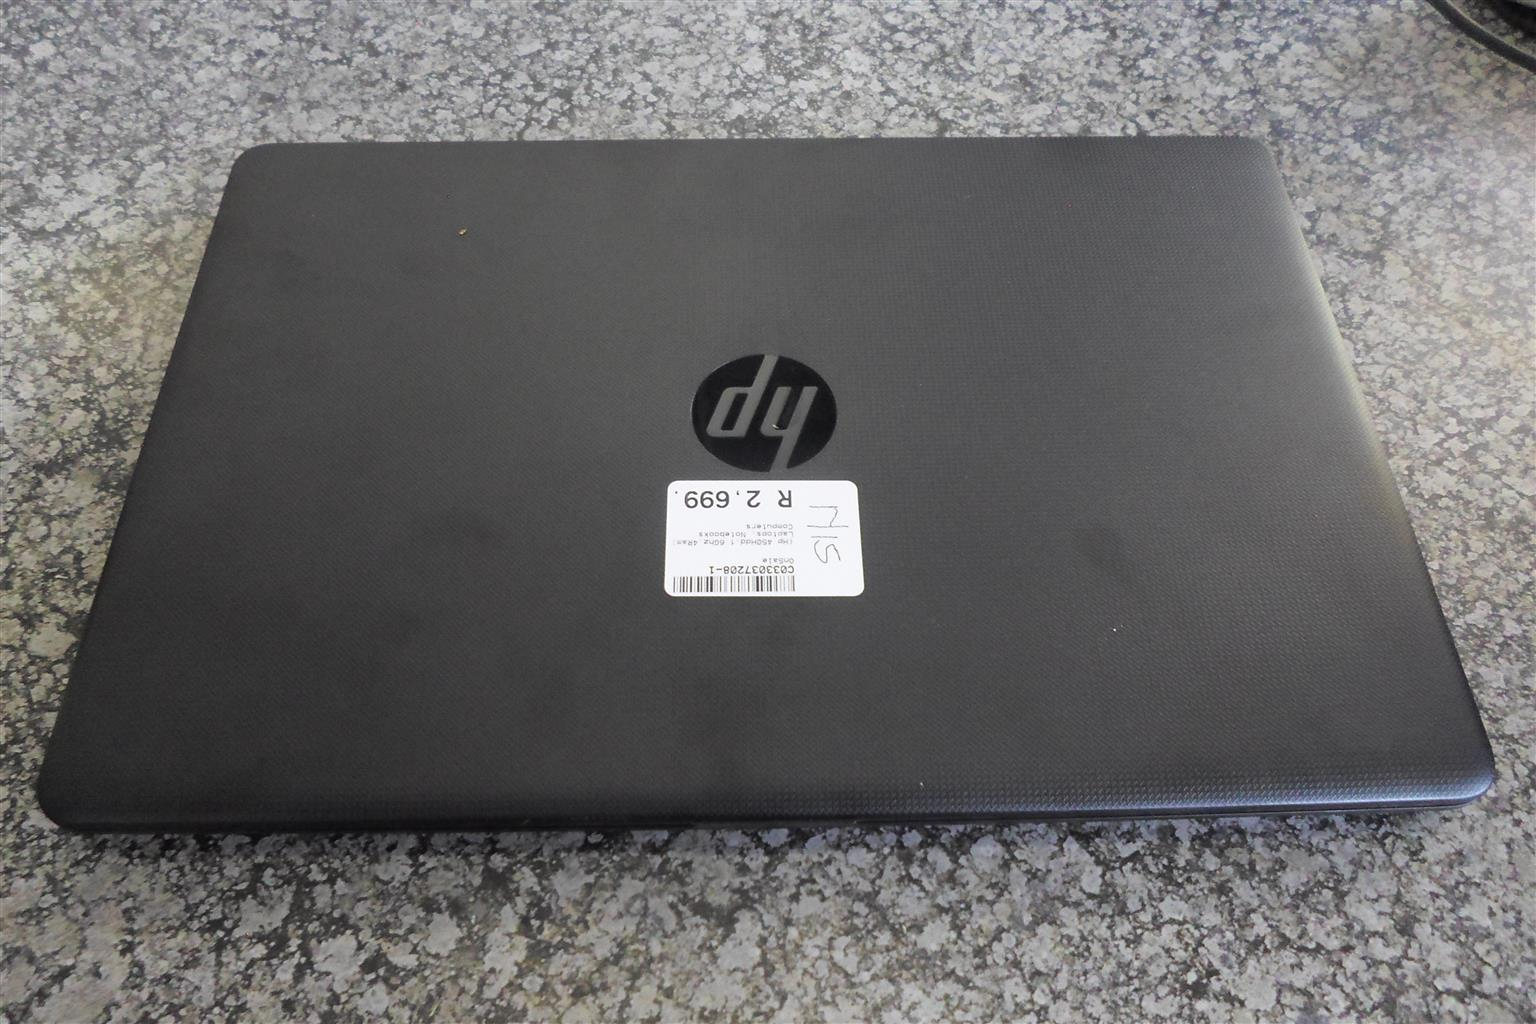 HP Laptop.